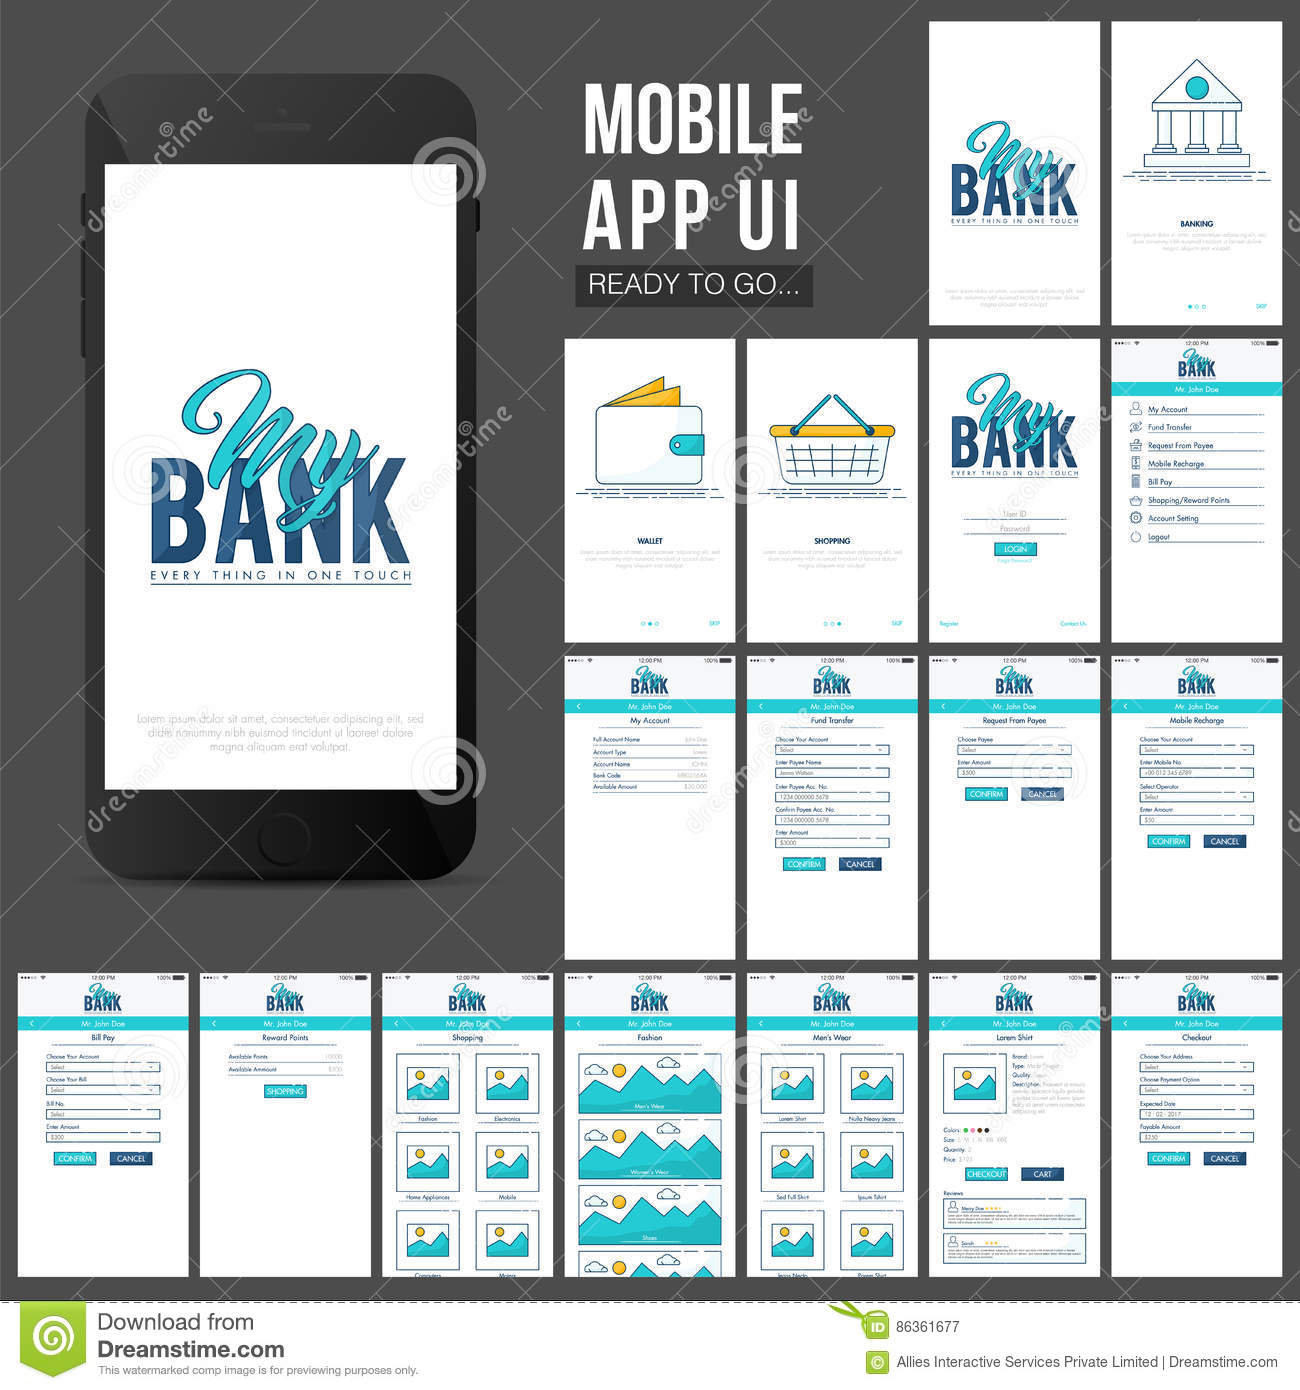 Online Banking Mobile Apps UI Design. Stock Photo - Image: 86361677